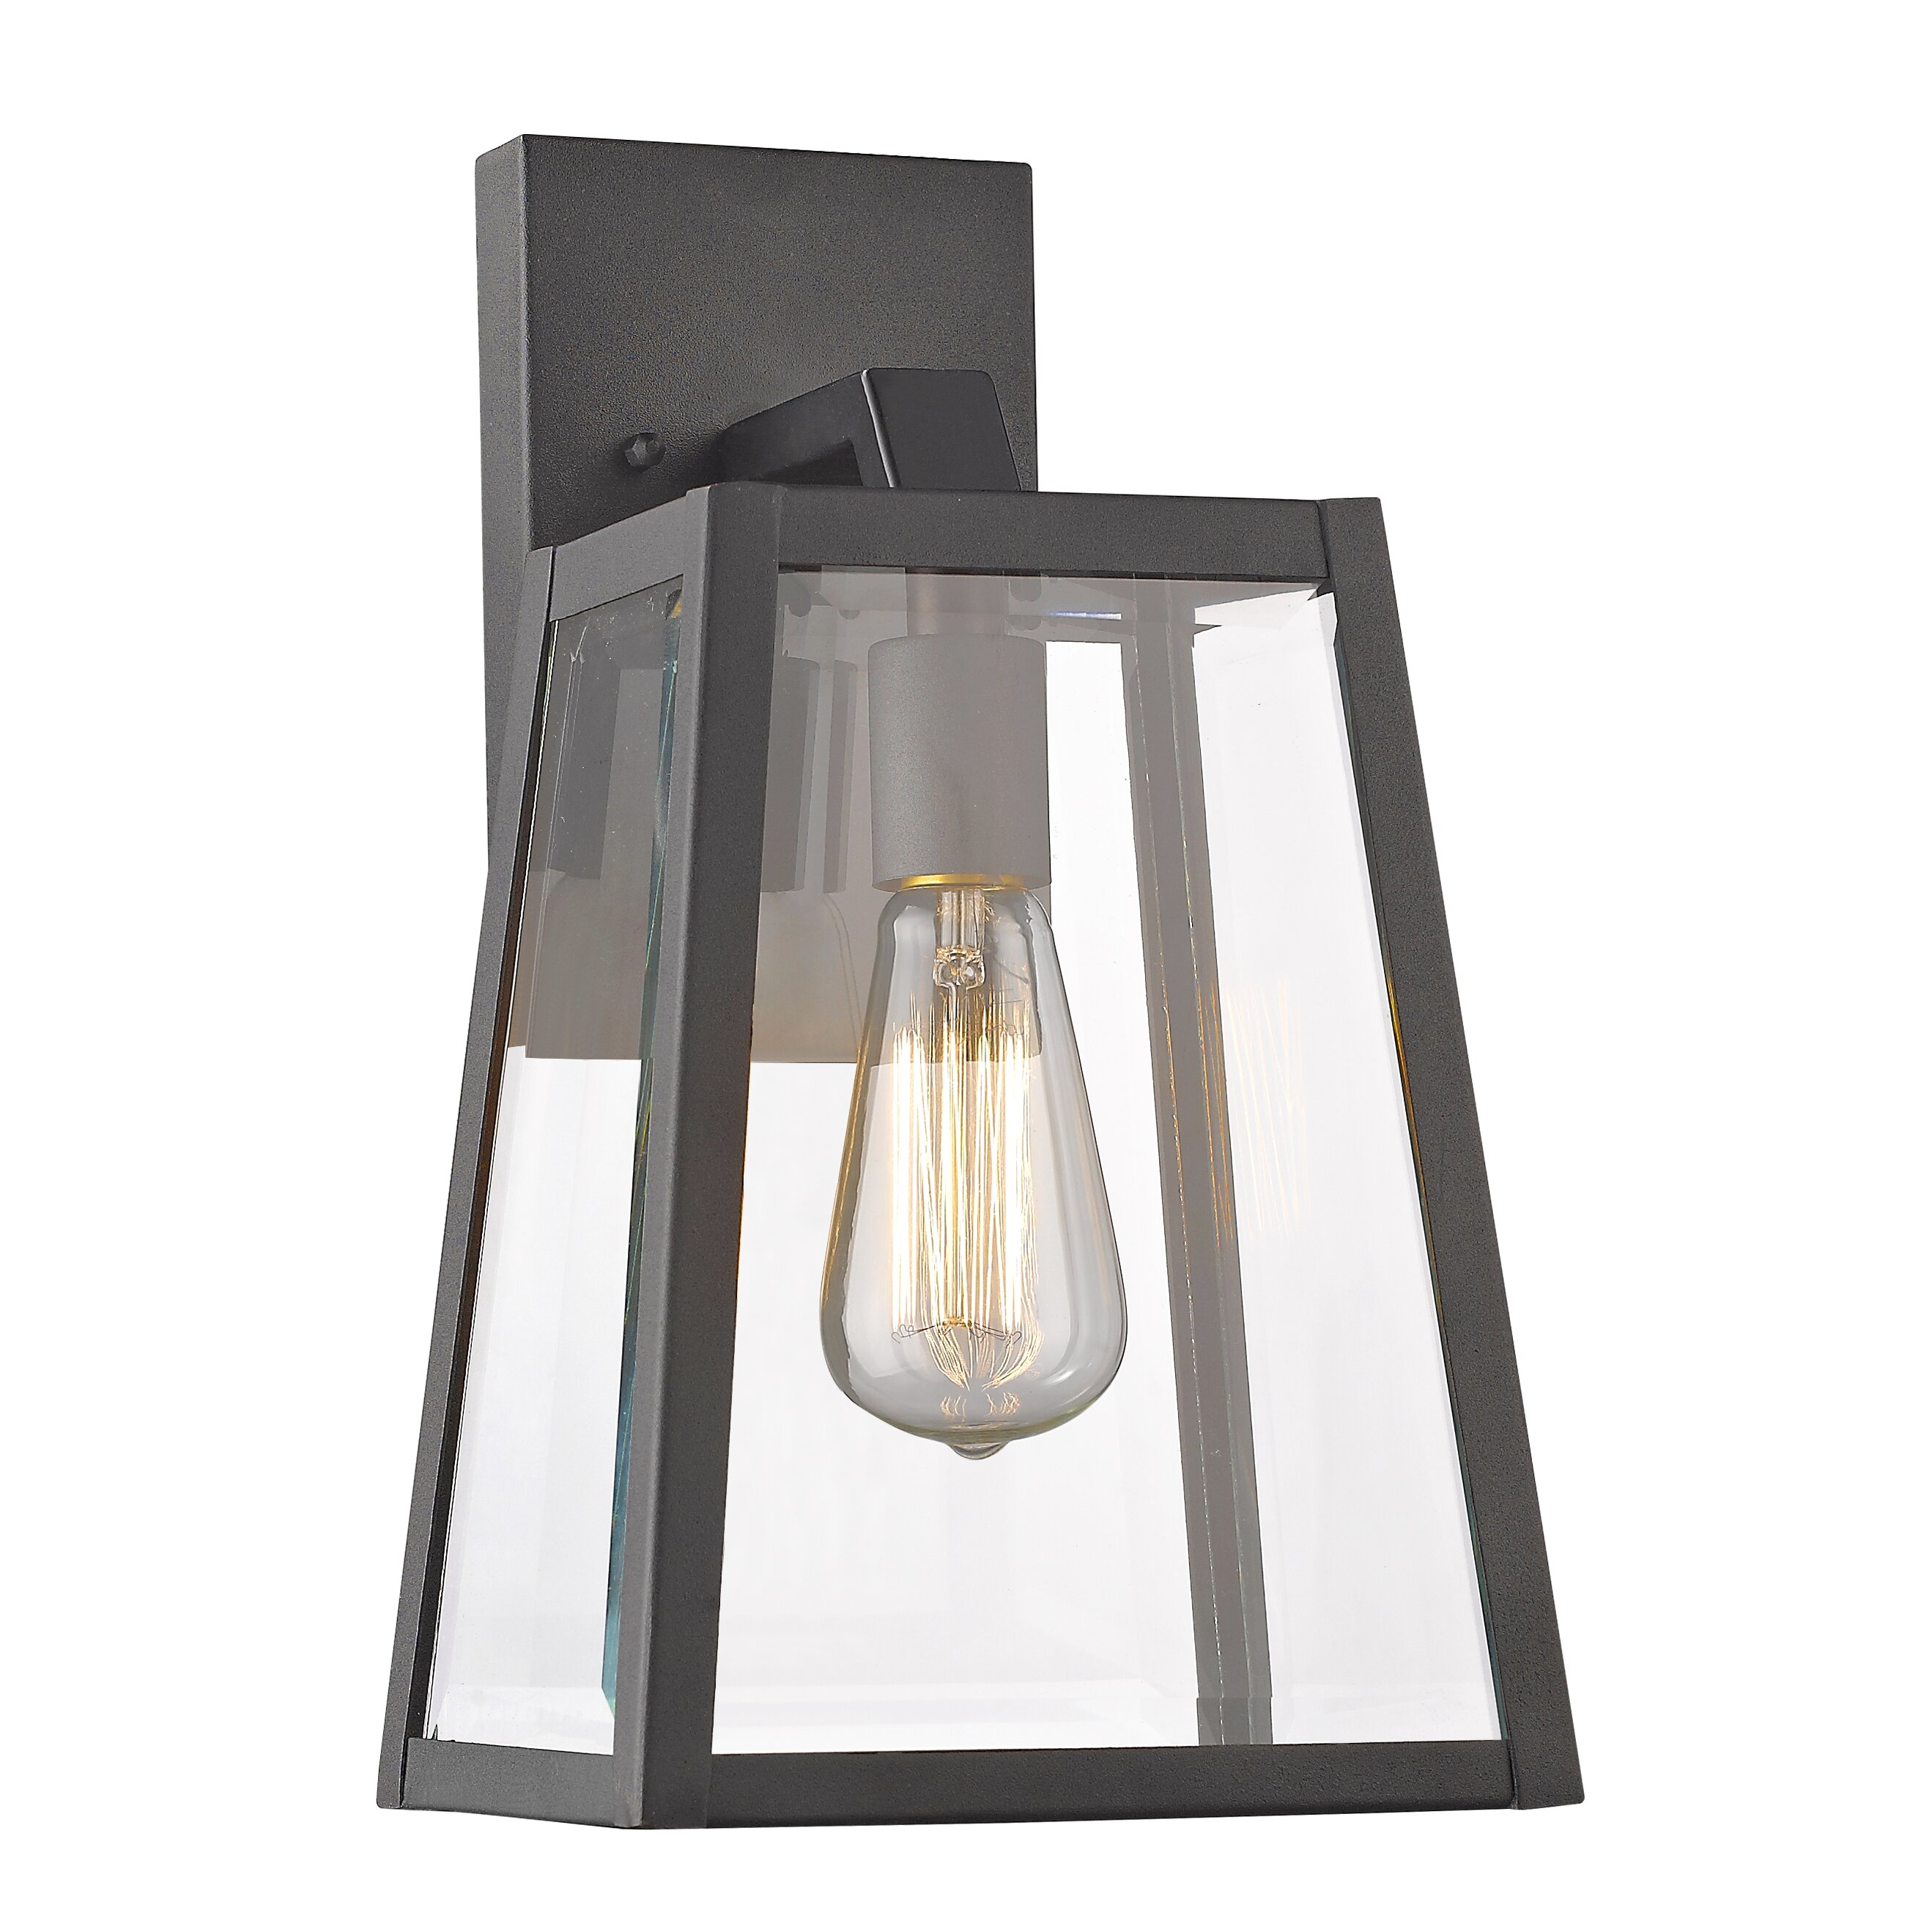 Wayfair Outdoor Wall Lights : Chloe Lighting 1 Light Outdoor Wall Lantern & Reviews Wayfair